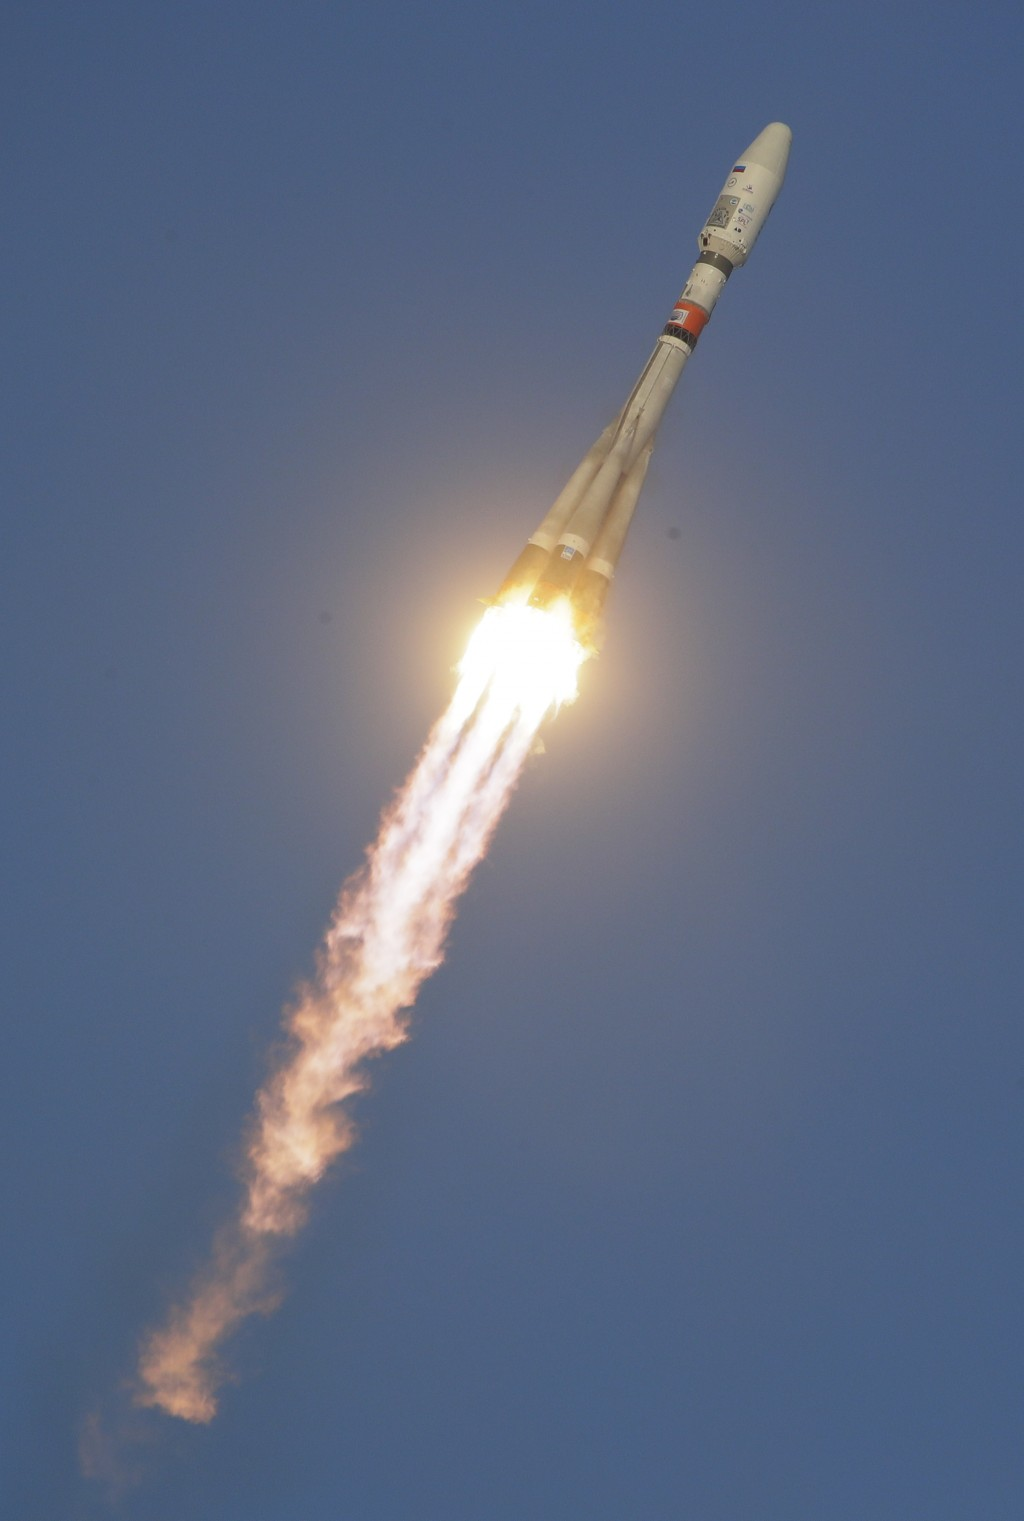 FILE - In this Tuesday, Nov. 28, 2017 file photo, a Russian Soyuz 2.1b rocket carrying Meteor M satellite and additional 18 small satellites, flies in...